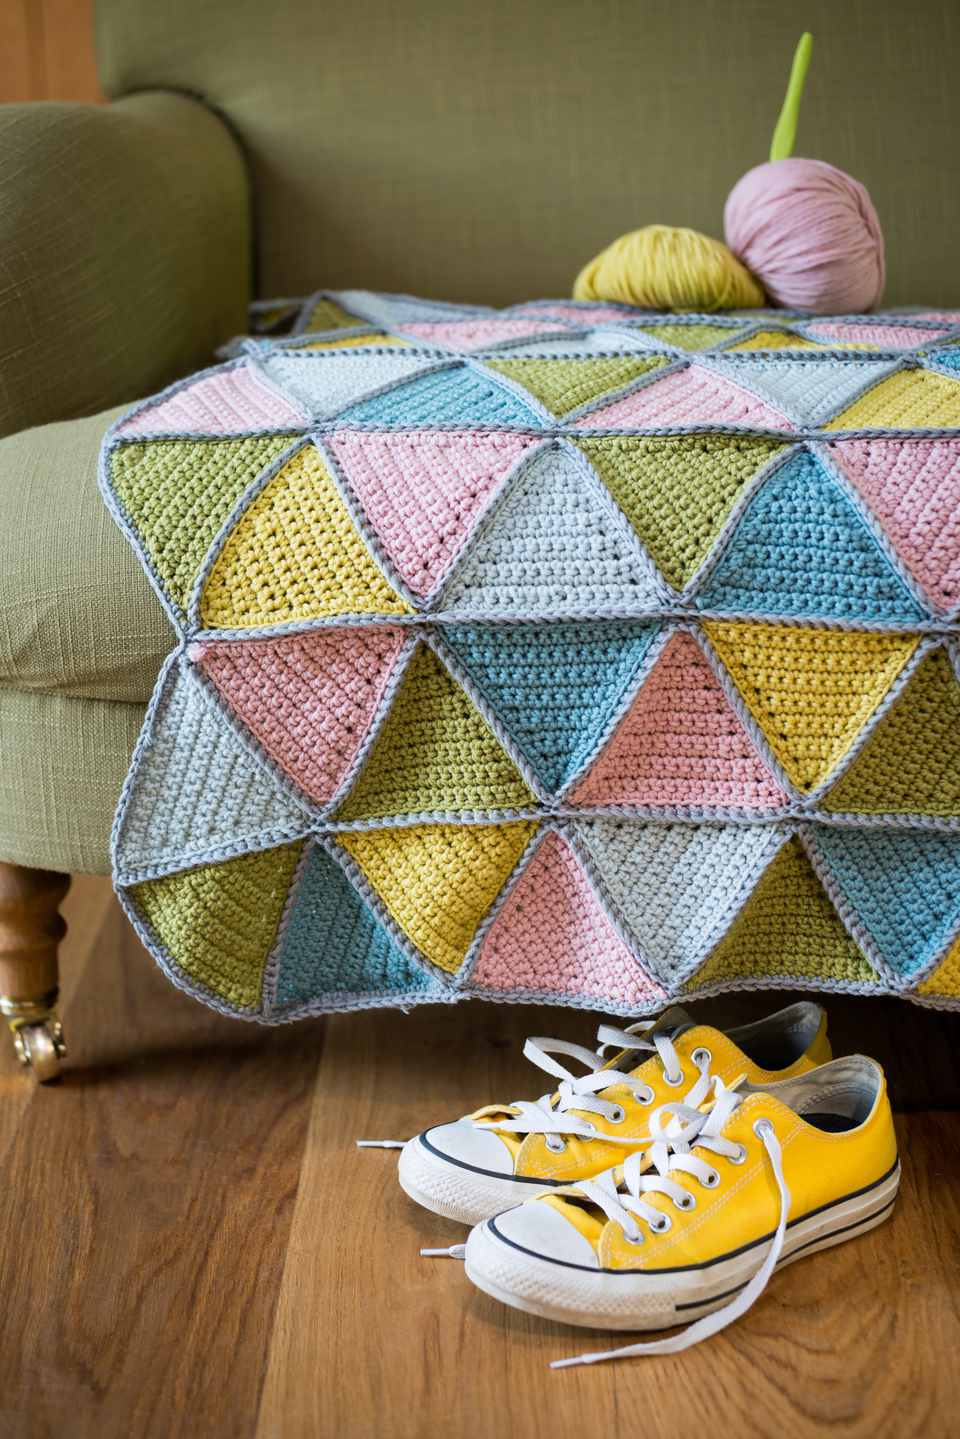 Yellow sneakers under couch with yarn and knitted woolen mat.